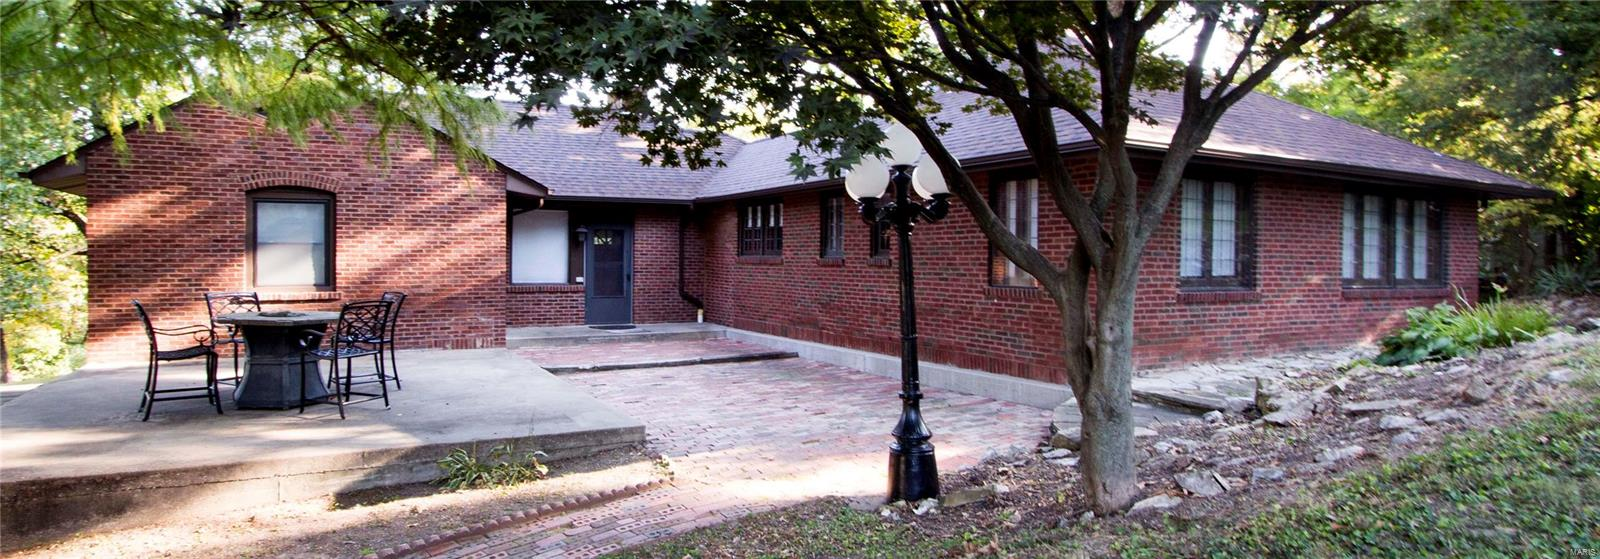 2 Lansing Avenue Property Photo - Maryland Heights, MO real estate listing